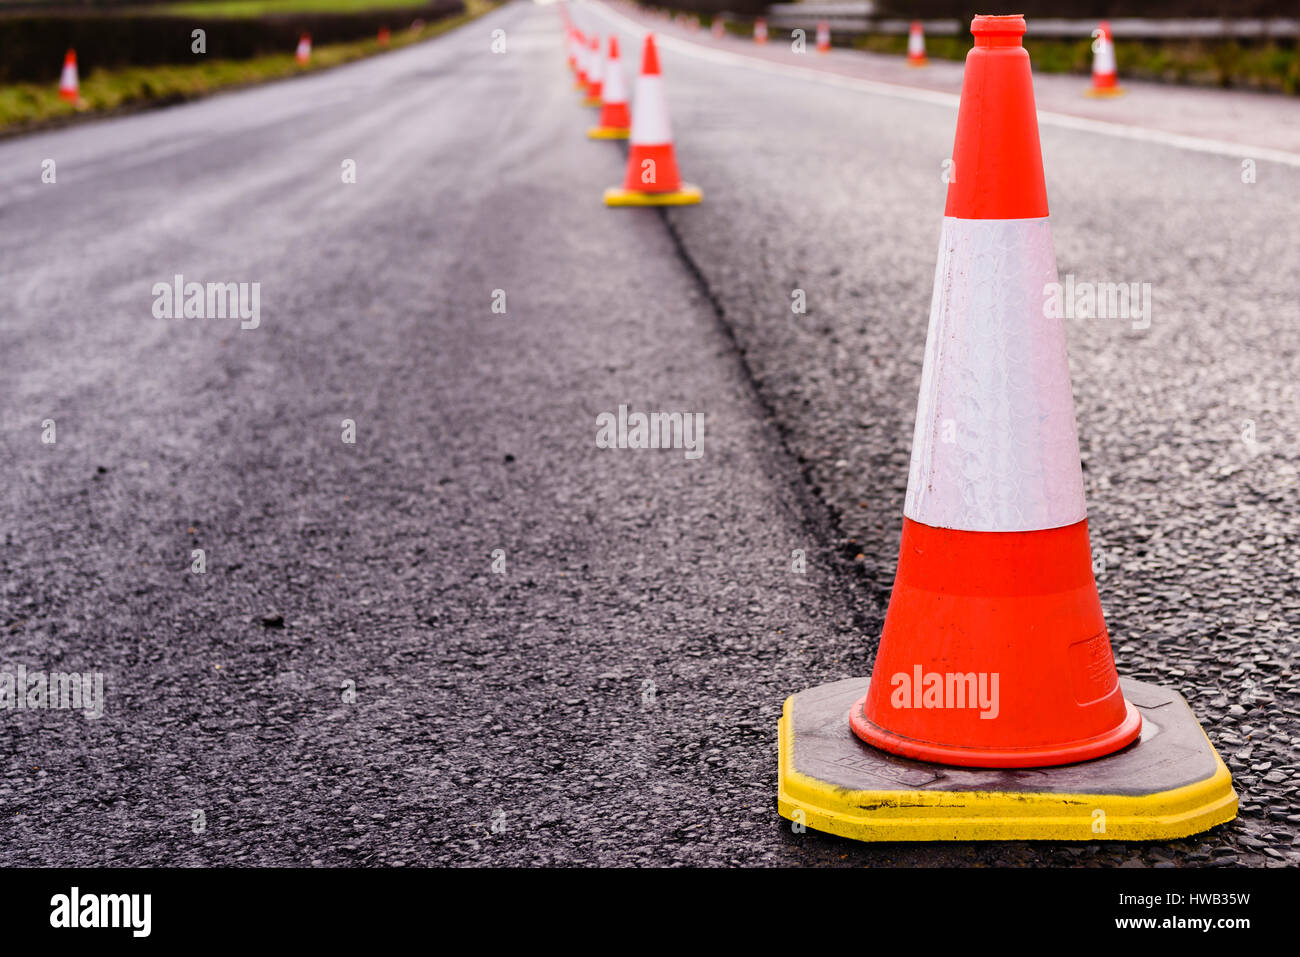 Row of traffic cones along the middle of a road being resurfaced. - Stock Image